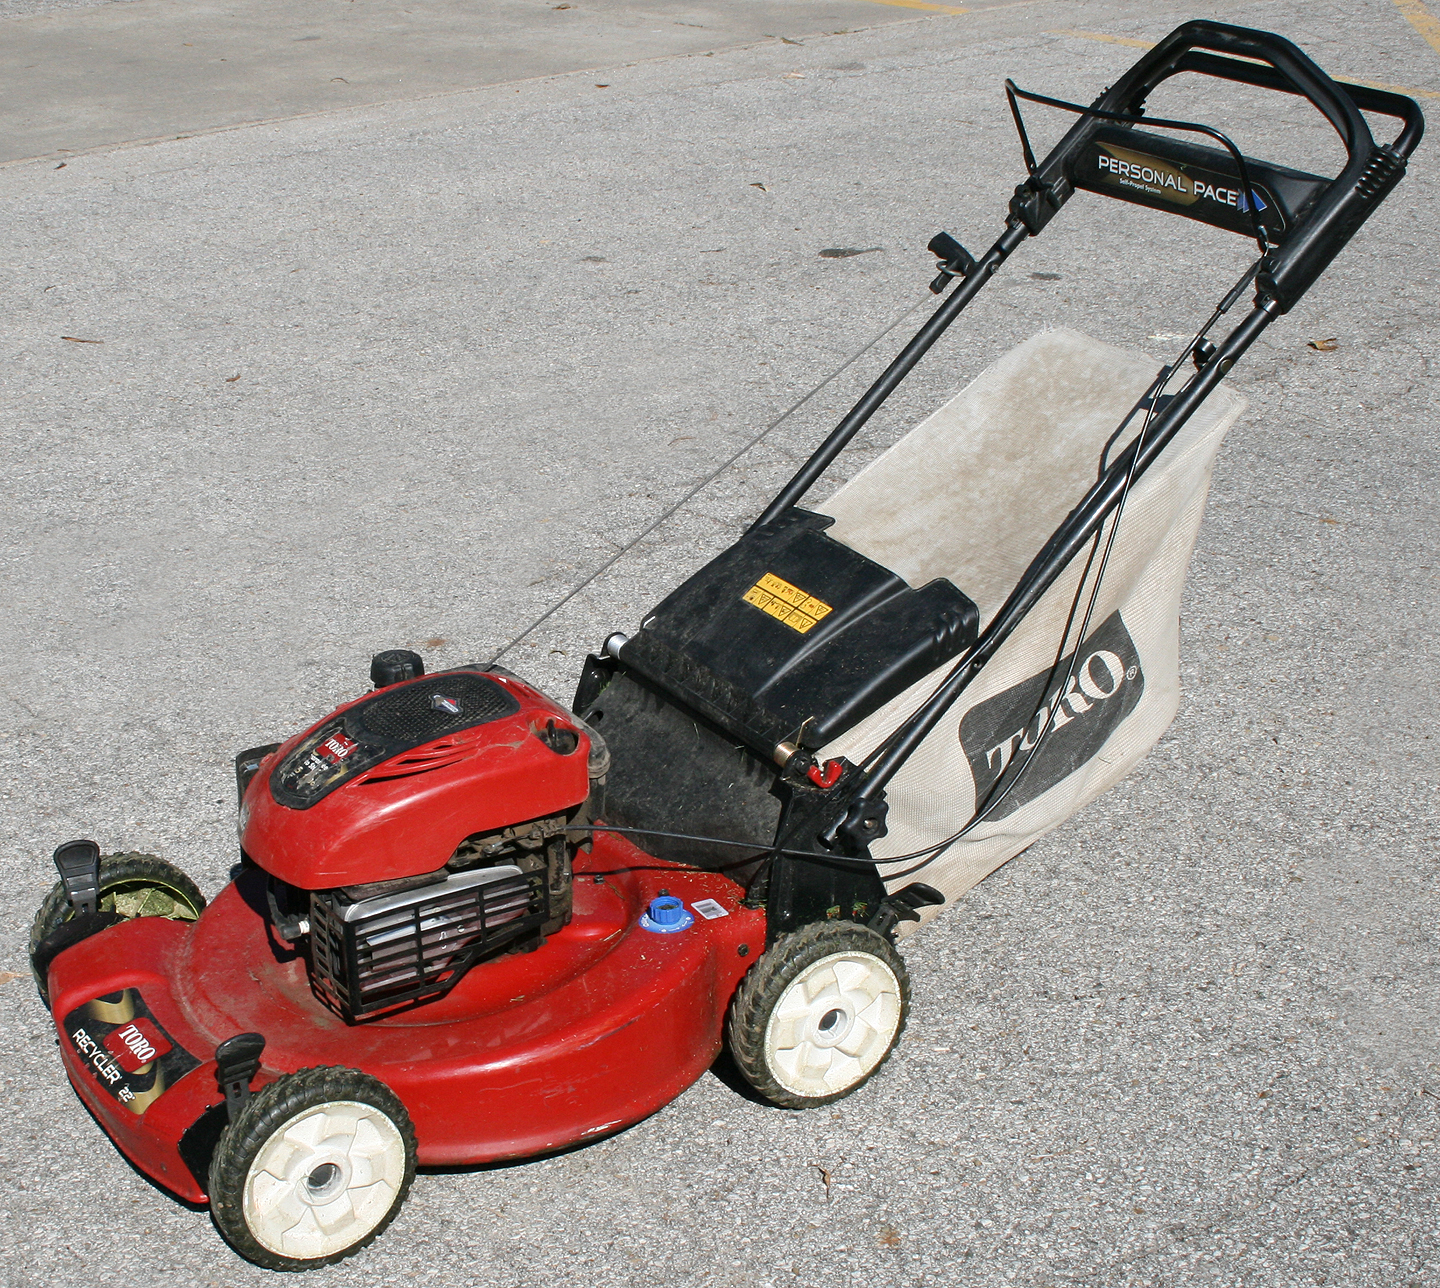 Toro Lawn Mower : Toro personal pace mower parts loadere